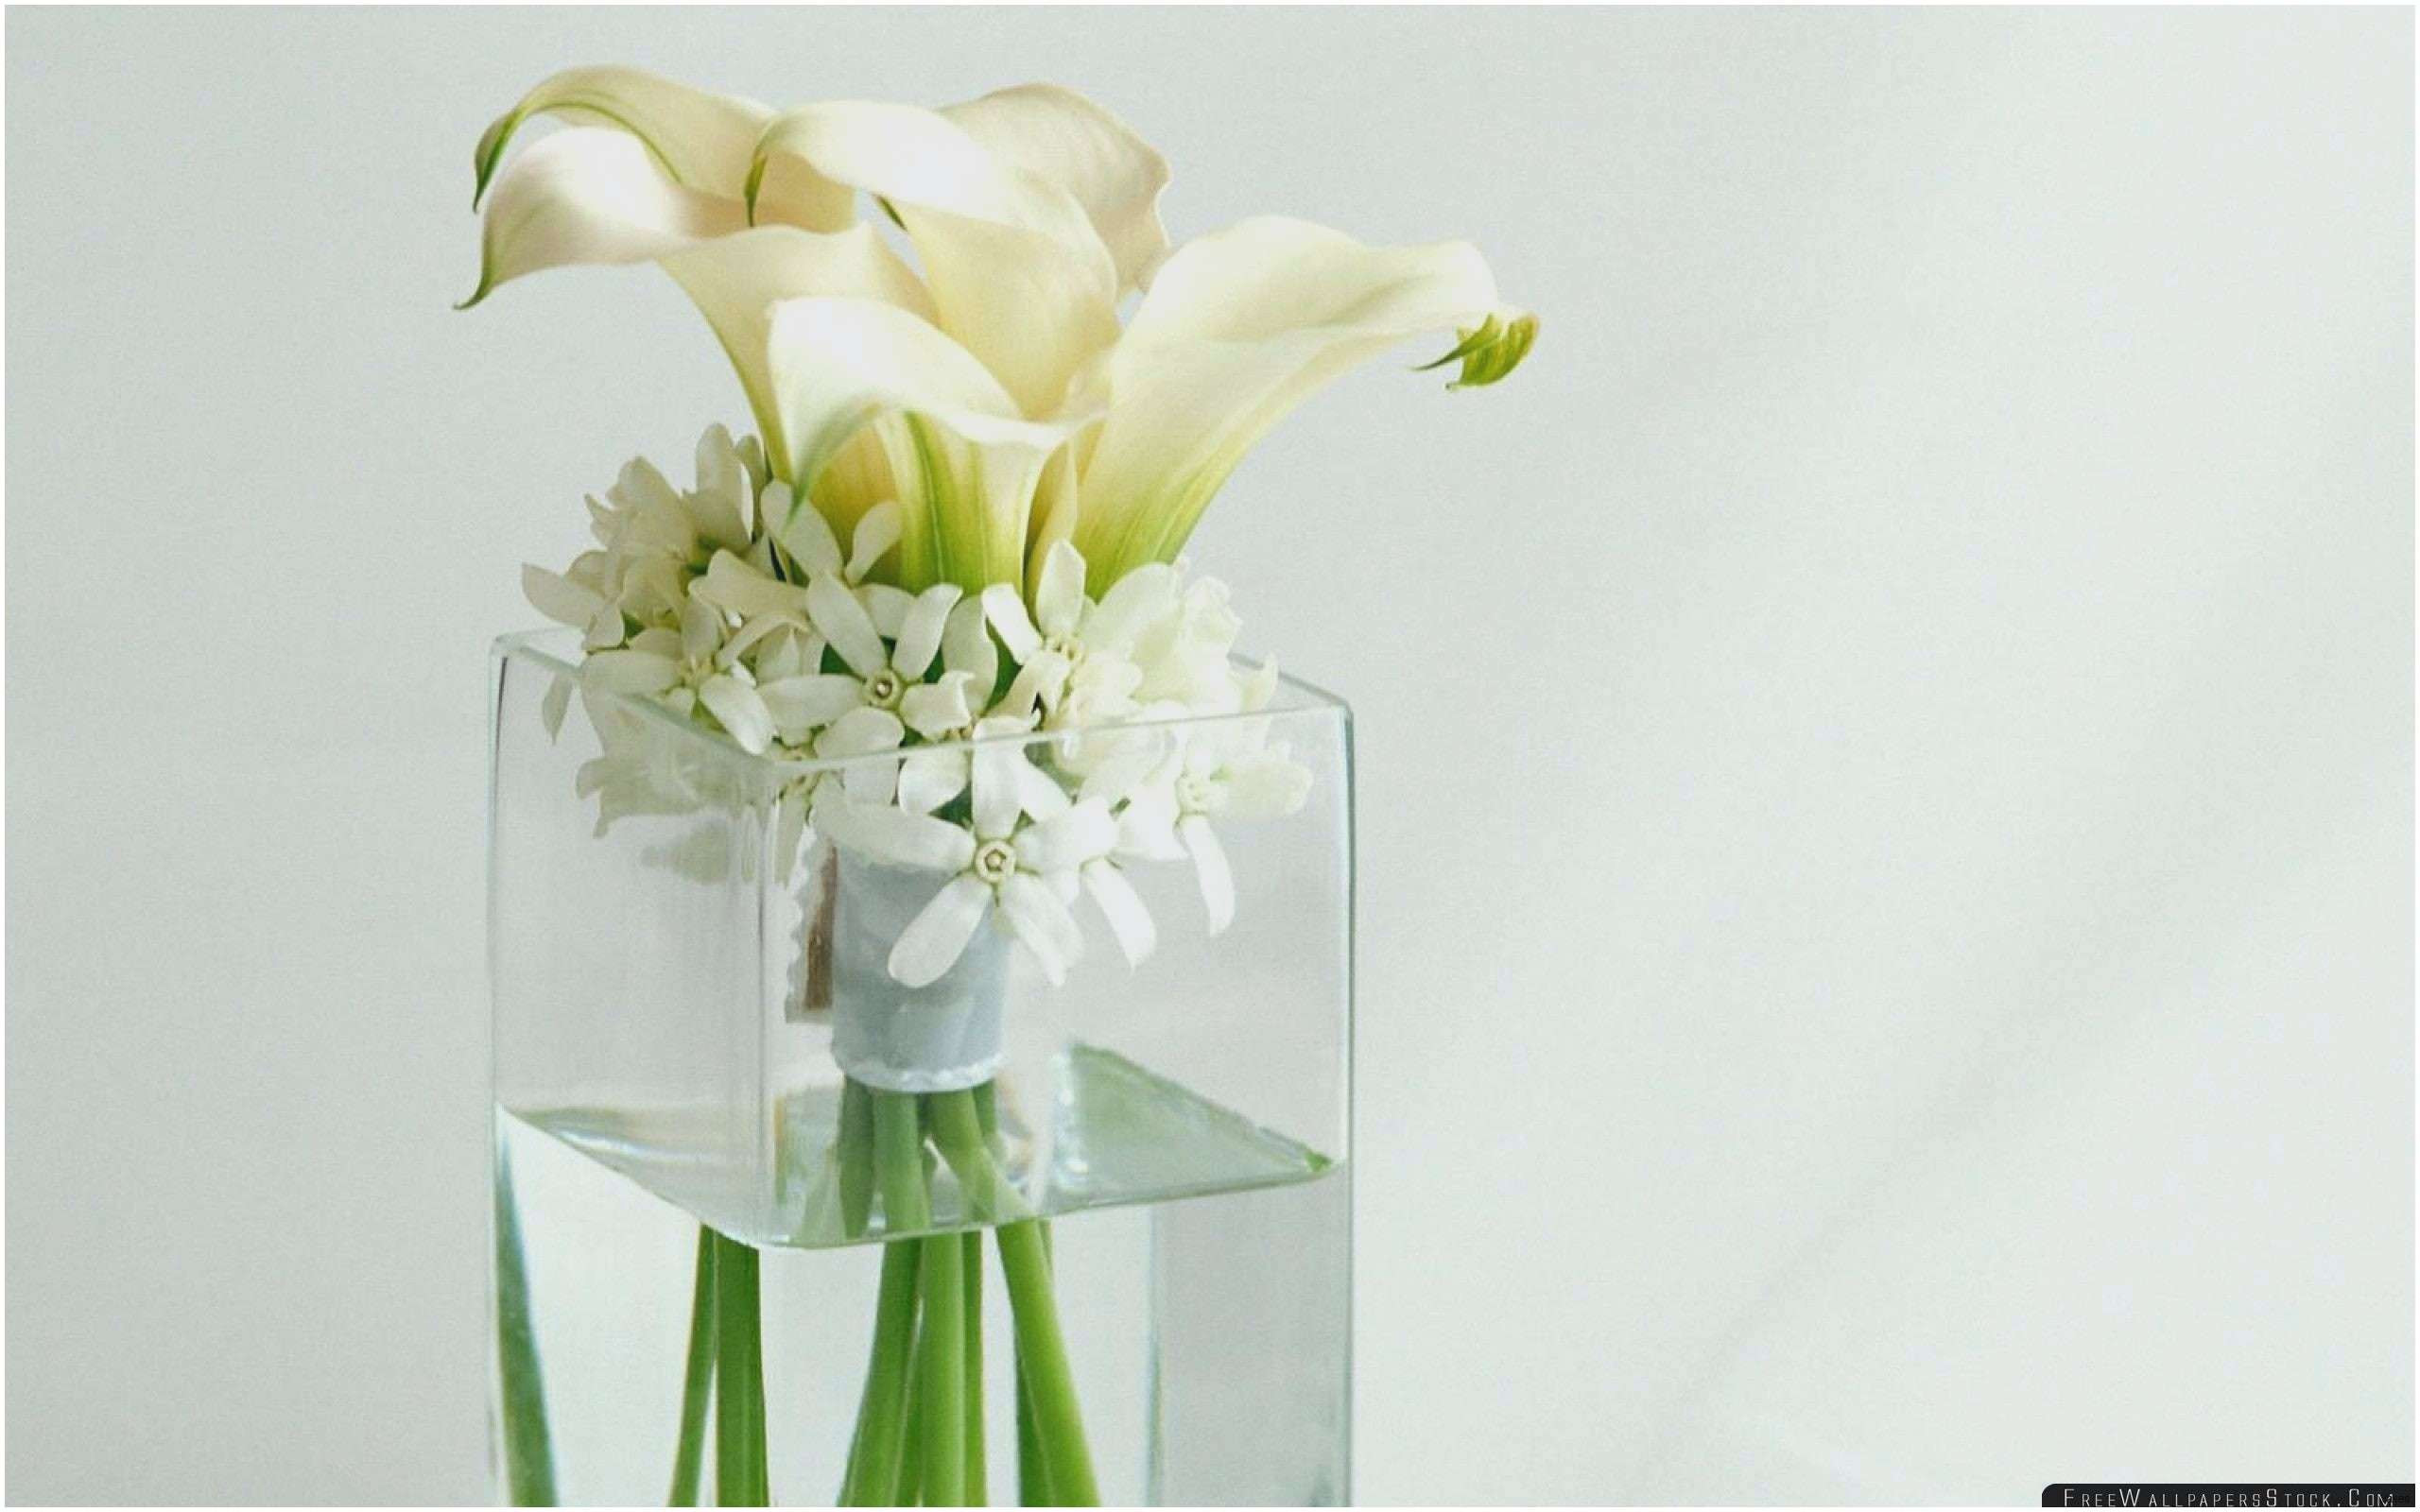 flower bulb vase of 25 add value tulip garden ideas newyorkrevolution org throughout tall vase centerpiece ideas vases flowers in water 0d artificial inspiration glass vase centerpiece ideas